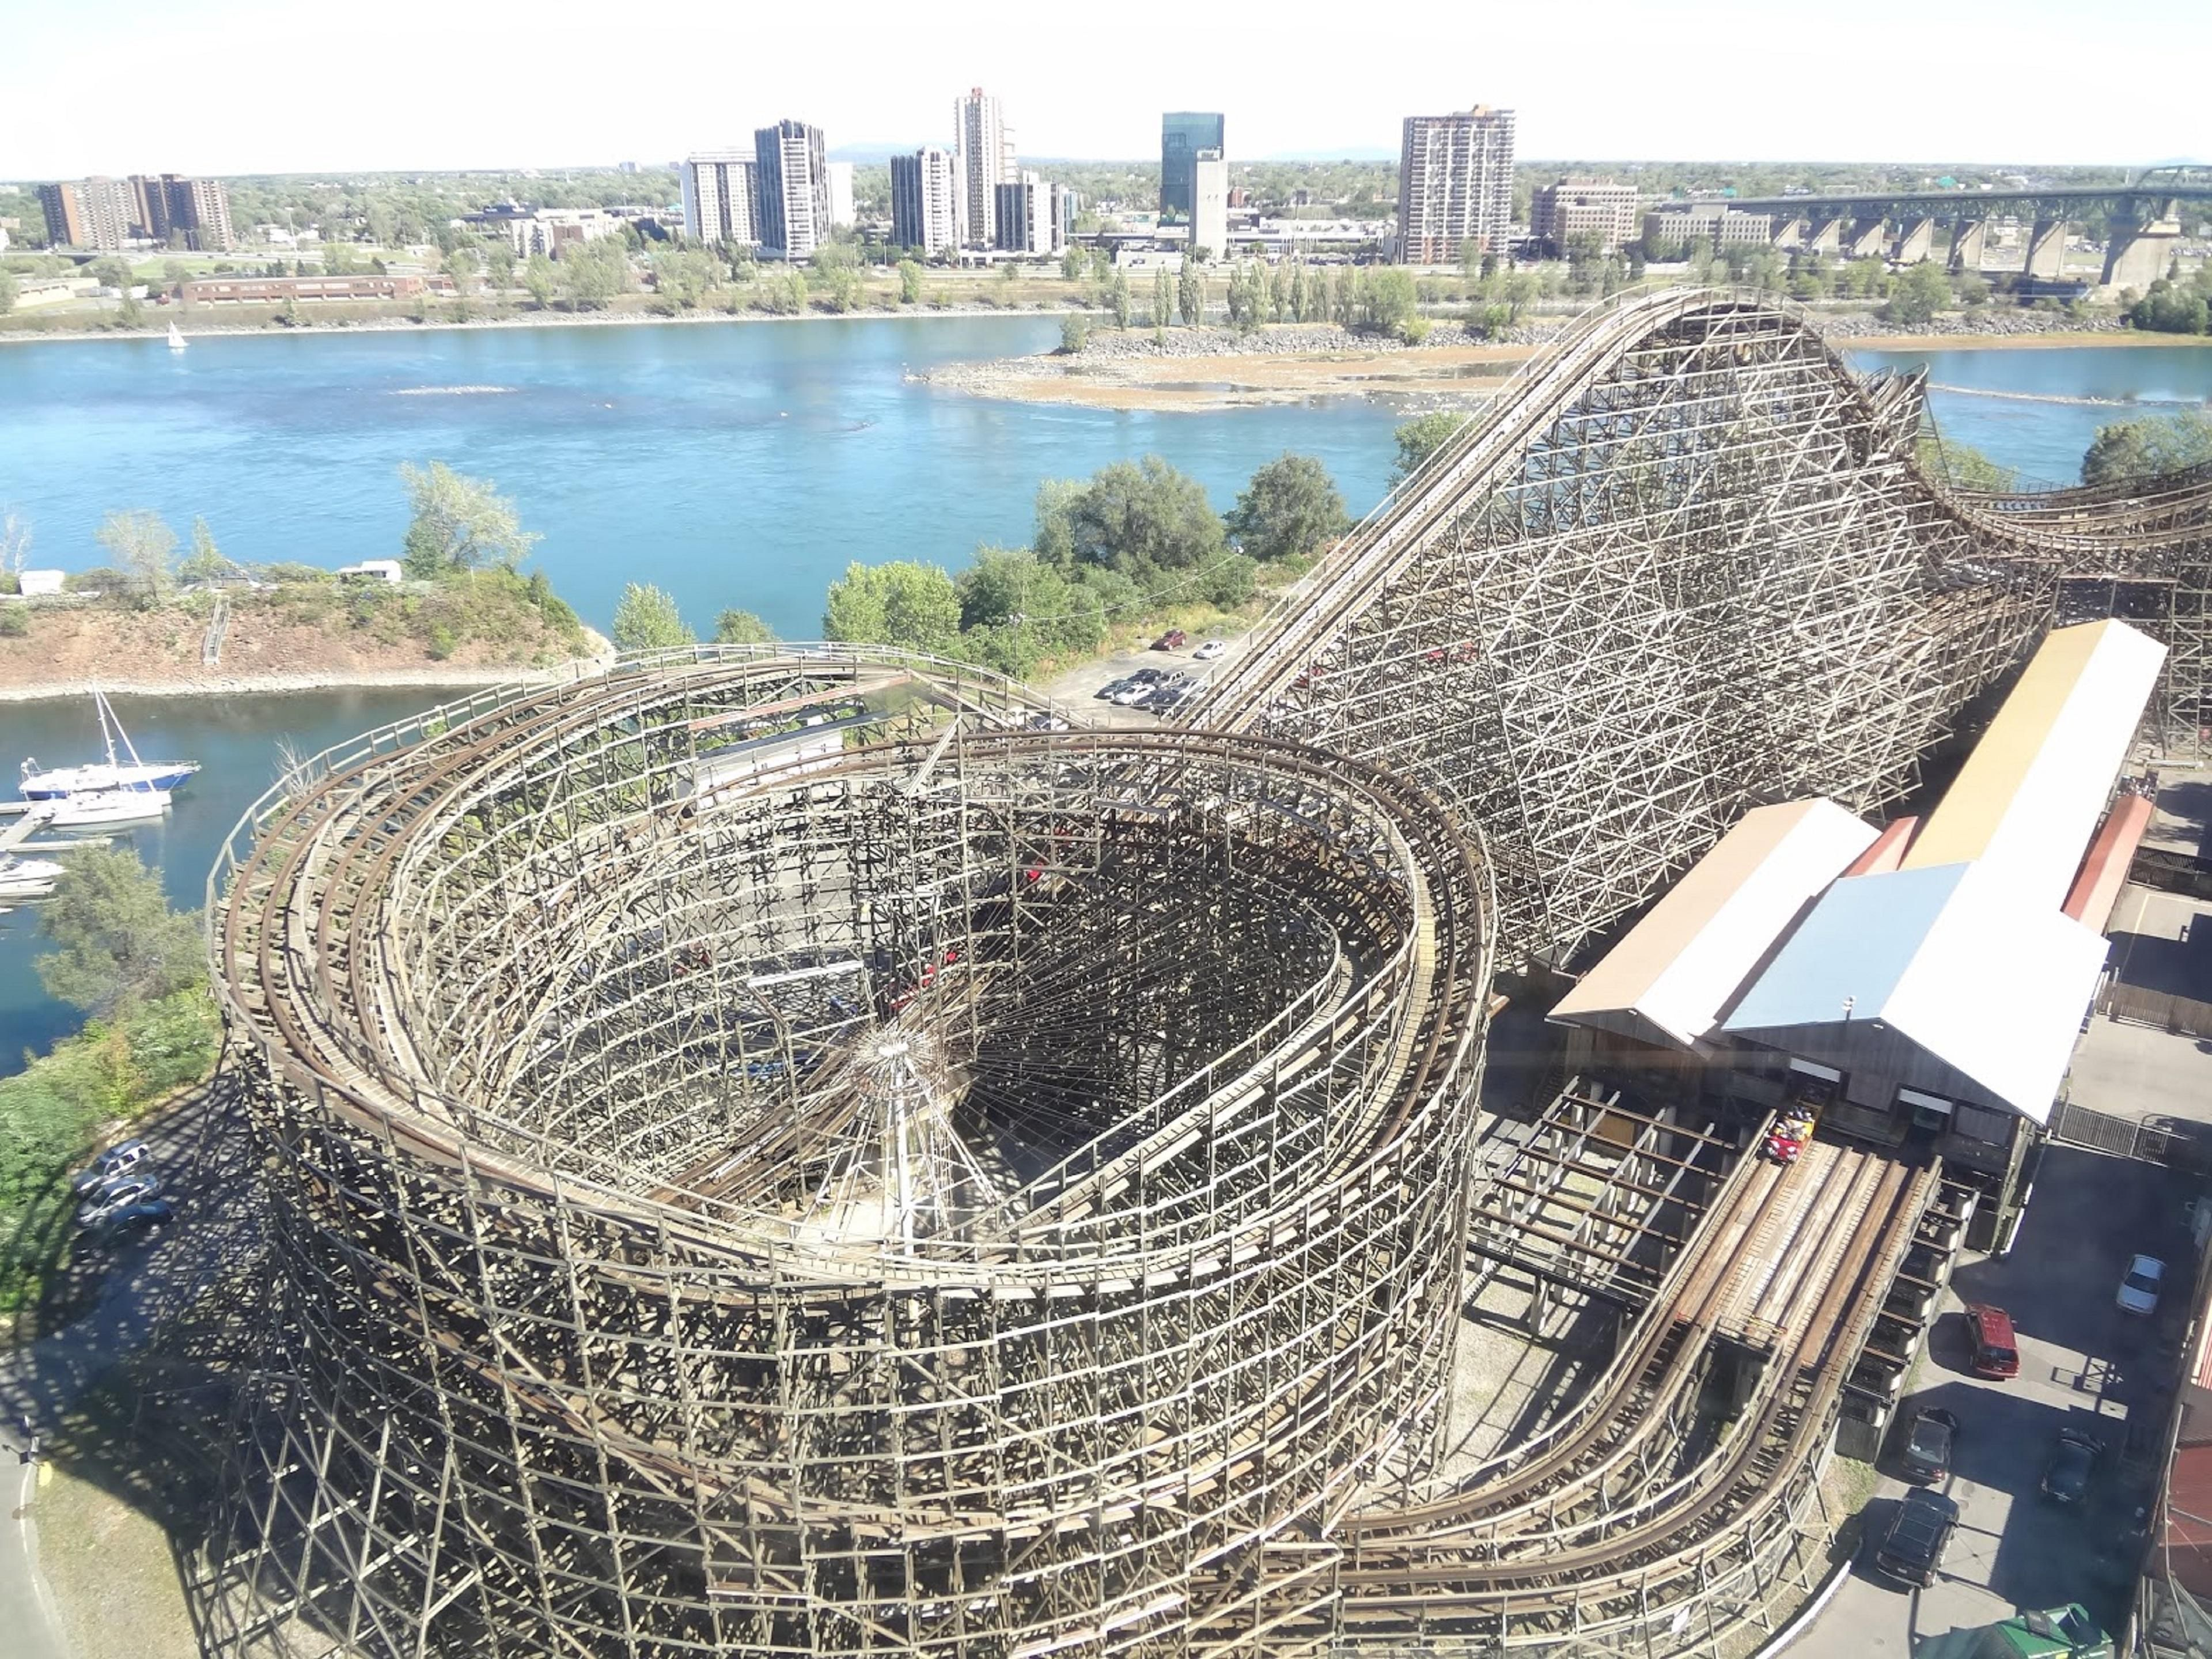 The wooden roller coaster at La Ronde! The Monster